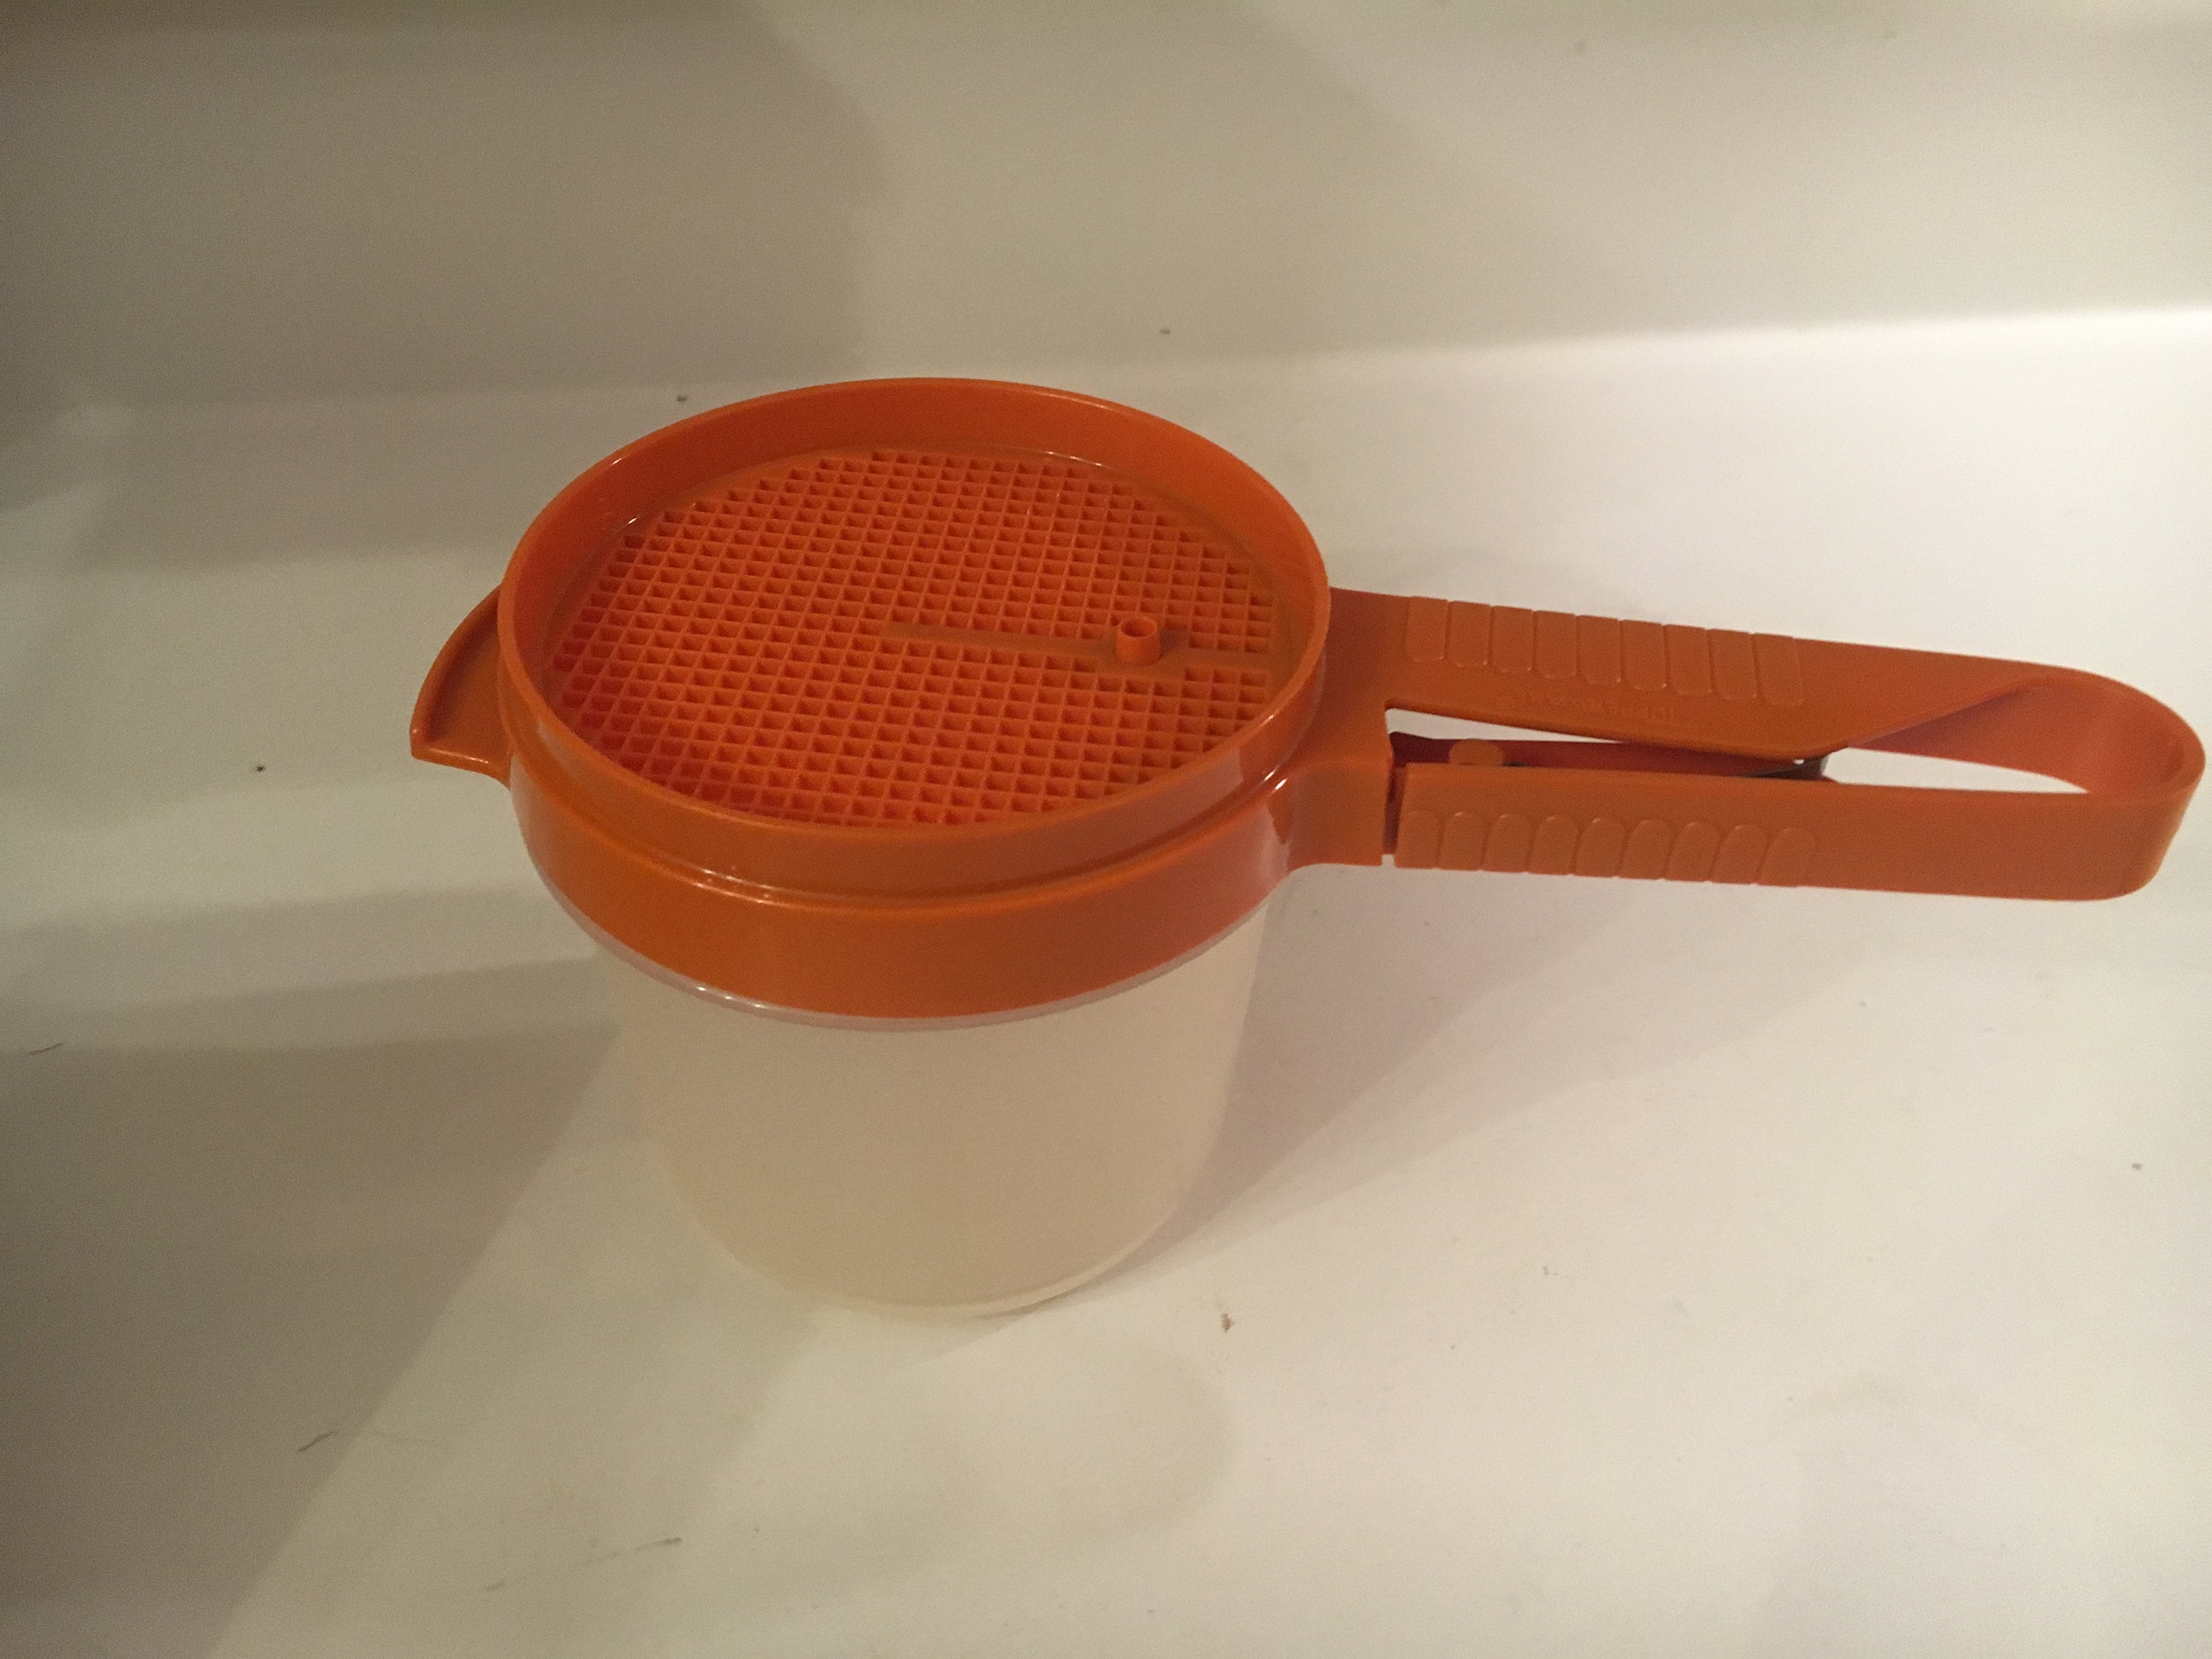 VINTAGE Tupperware Confectioners Sugar Sifter as shown